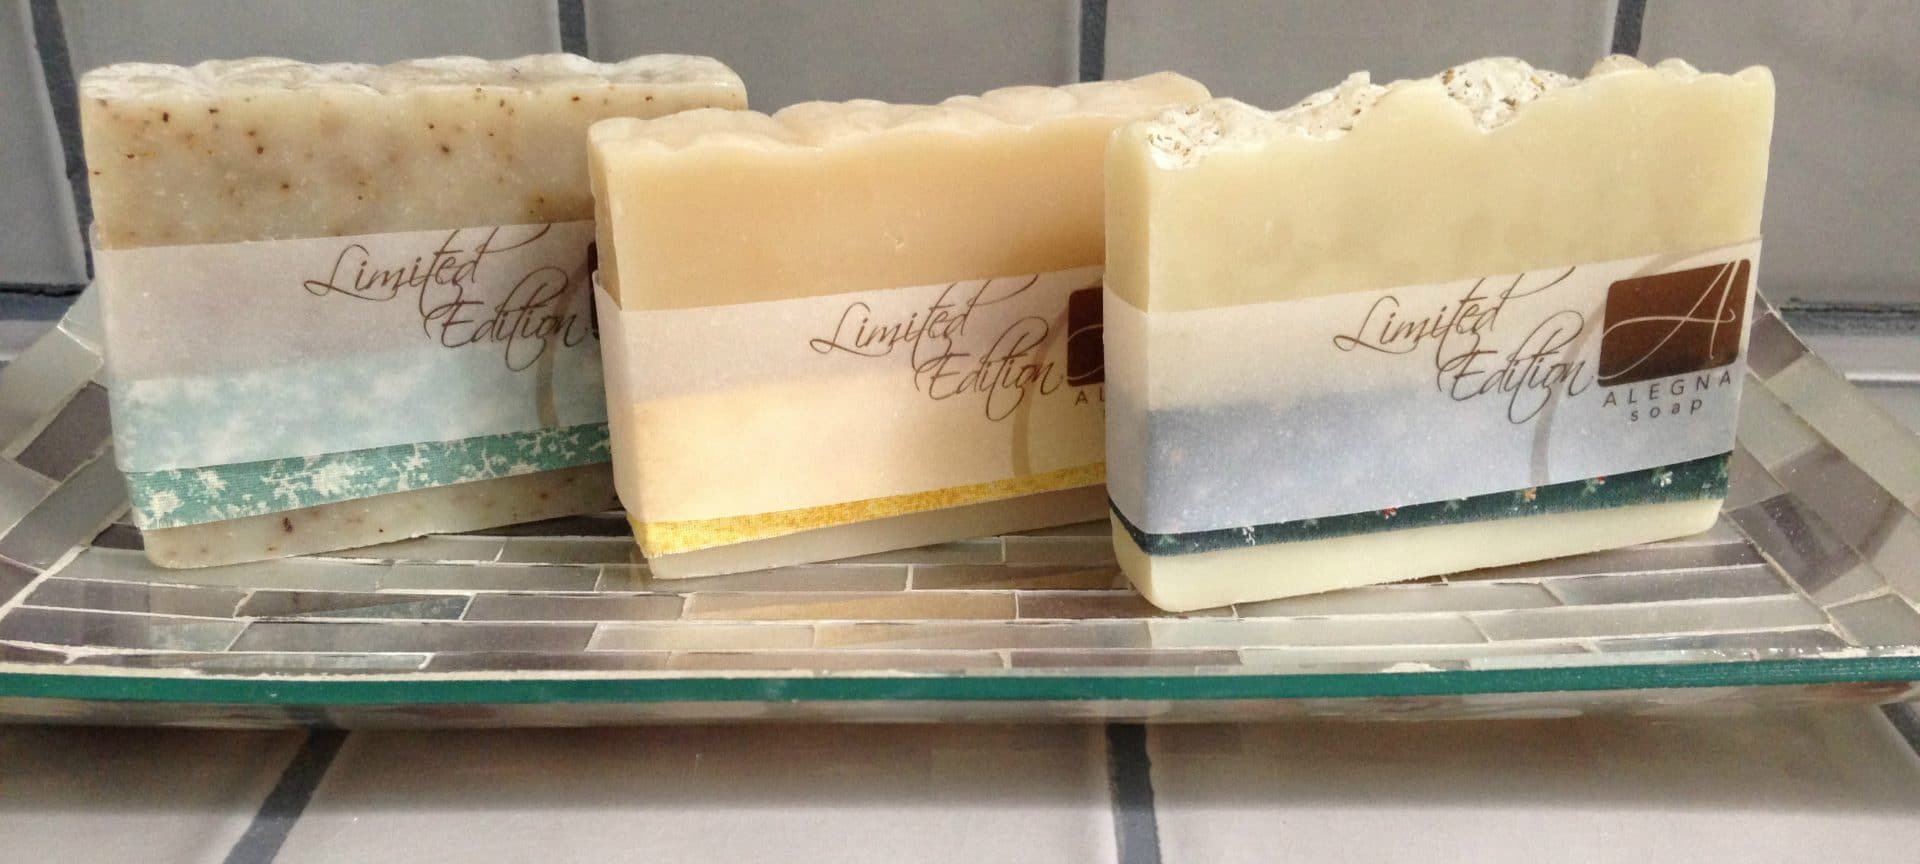 Photo Friday- Limited Edition Soaps